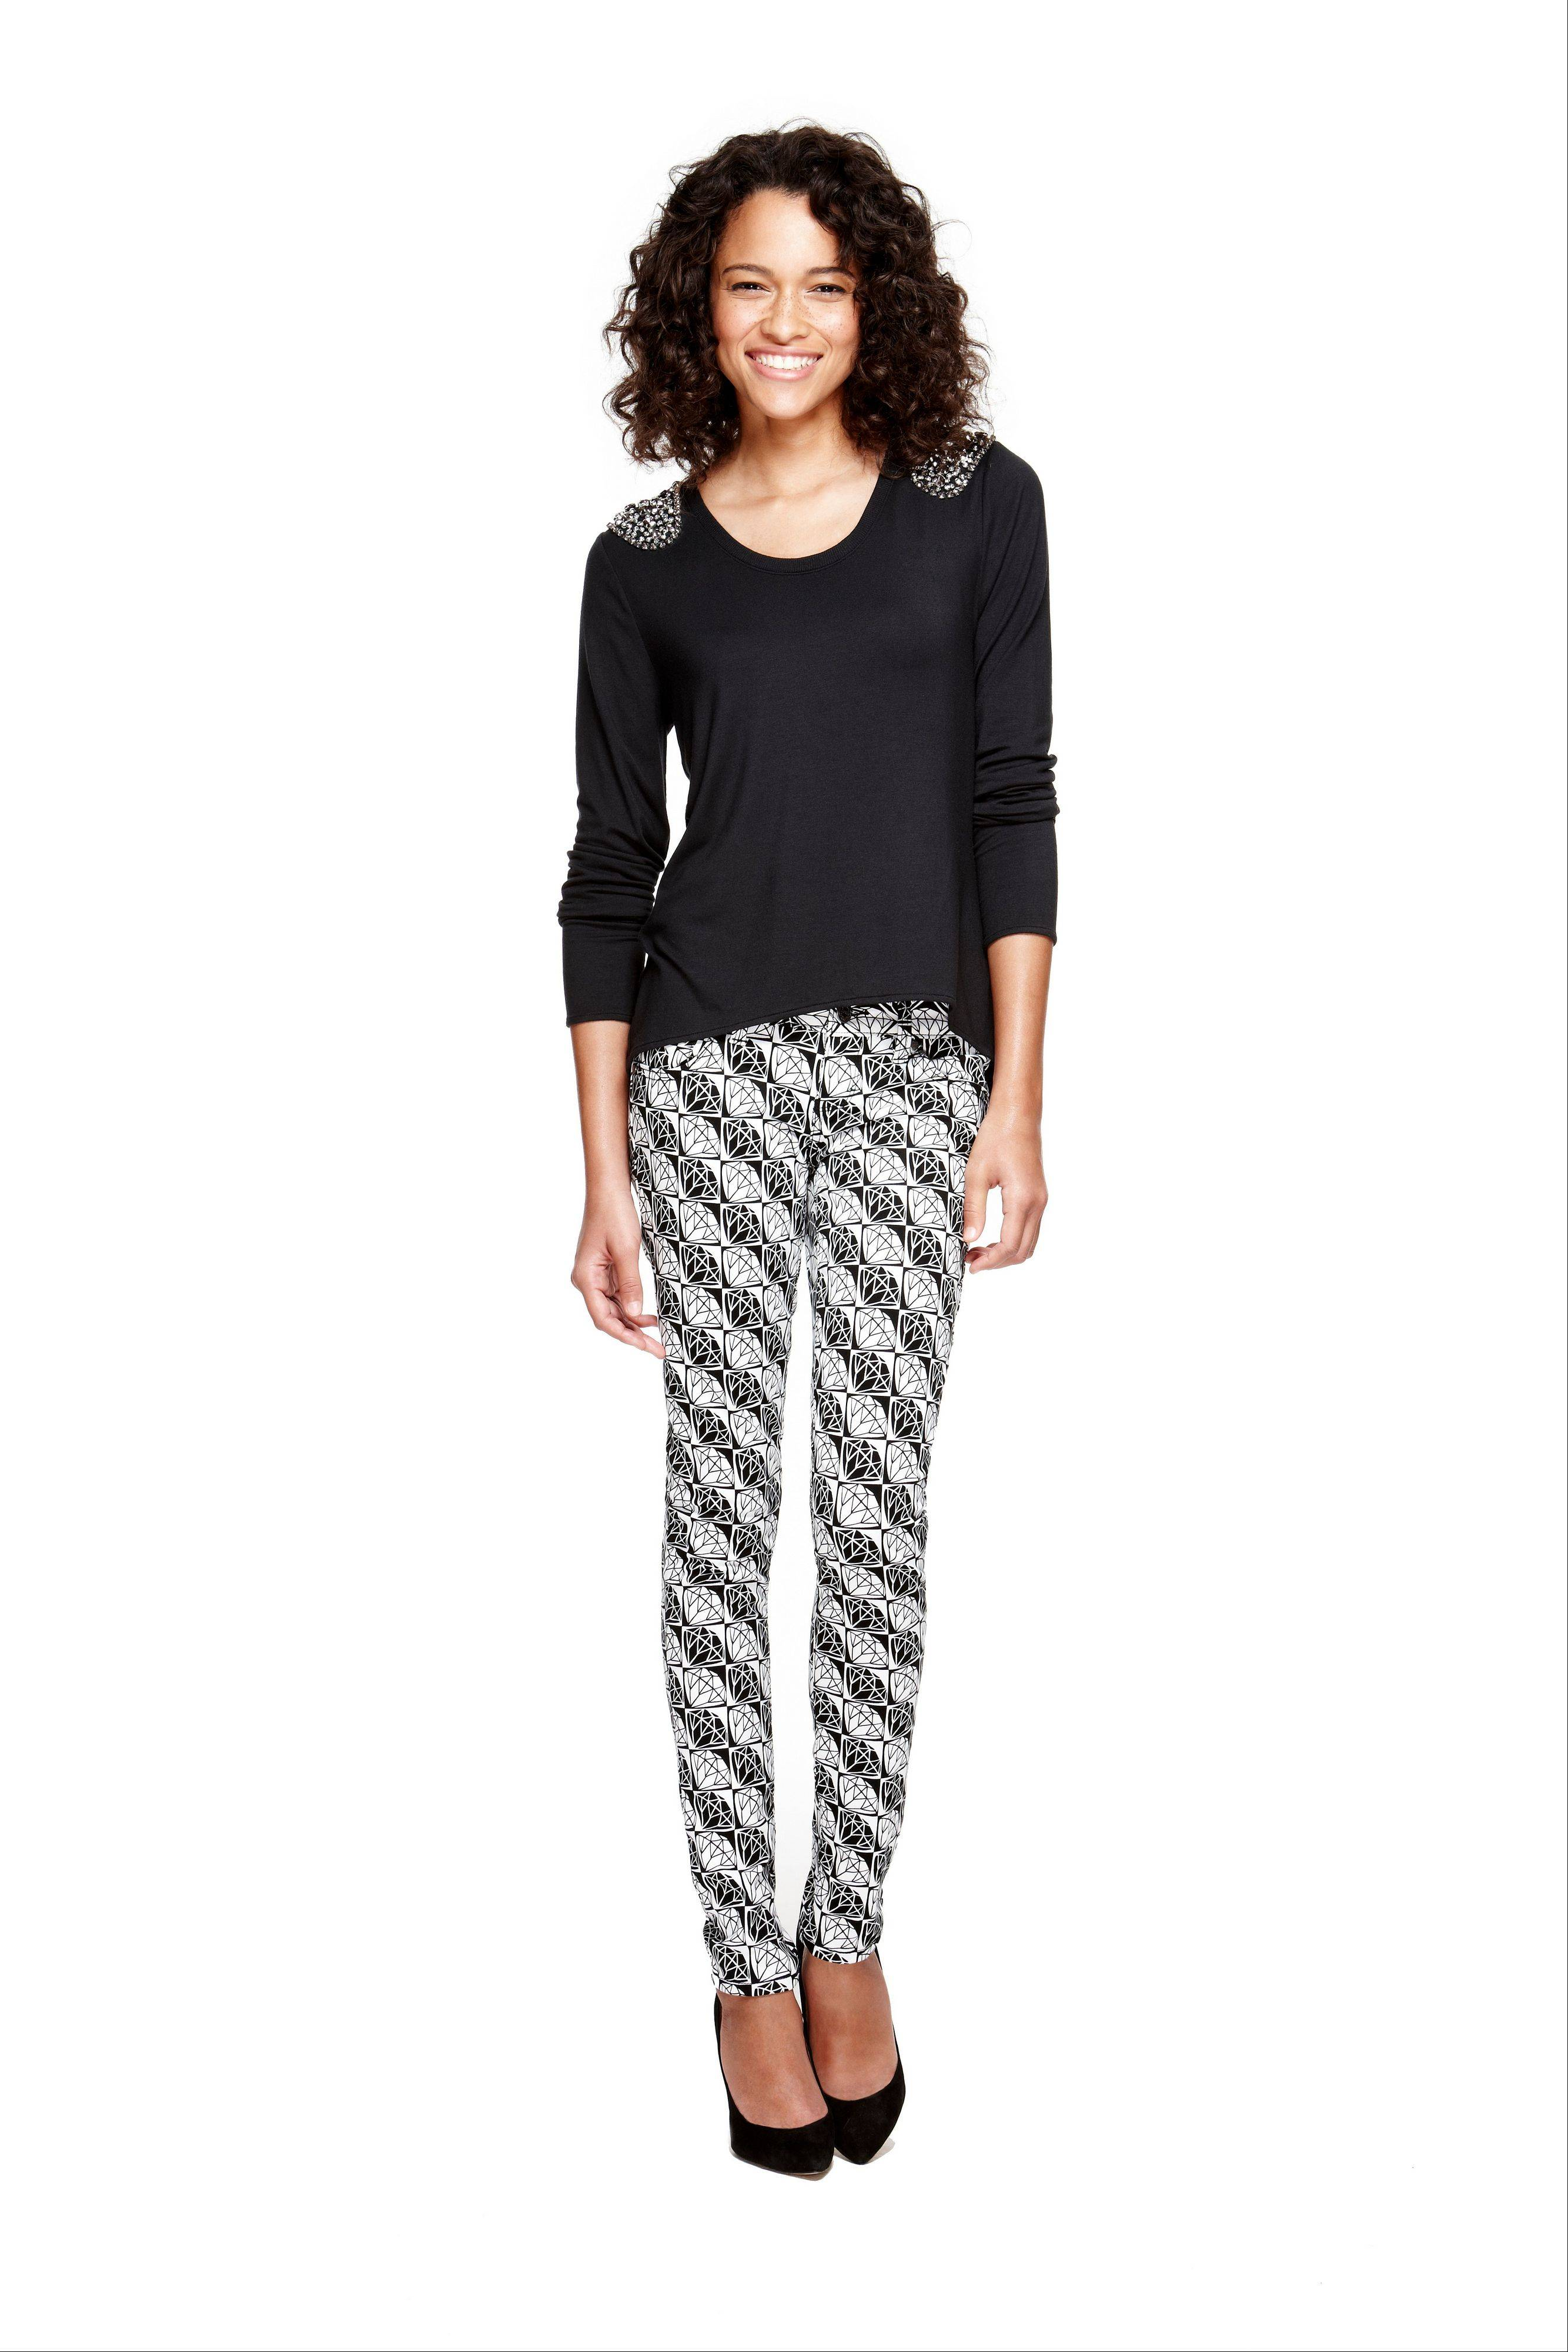 For fall, try a relaxed track printed pant. This is from the youth line called L�Amour.